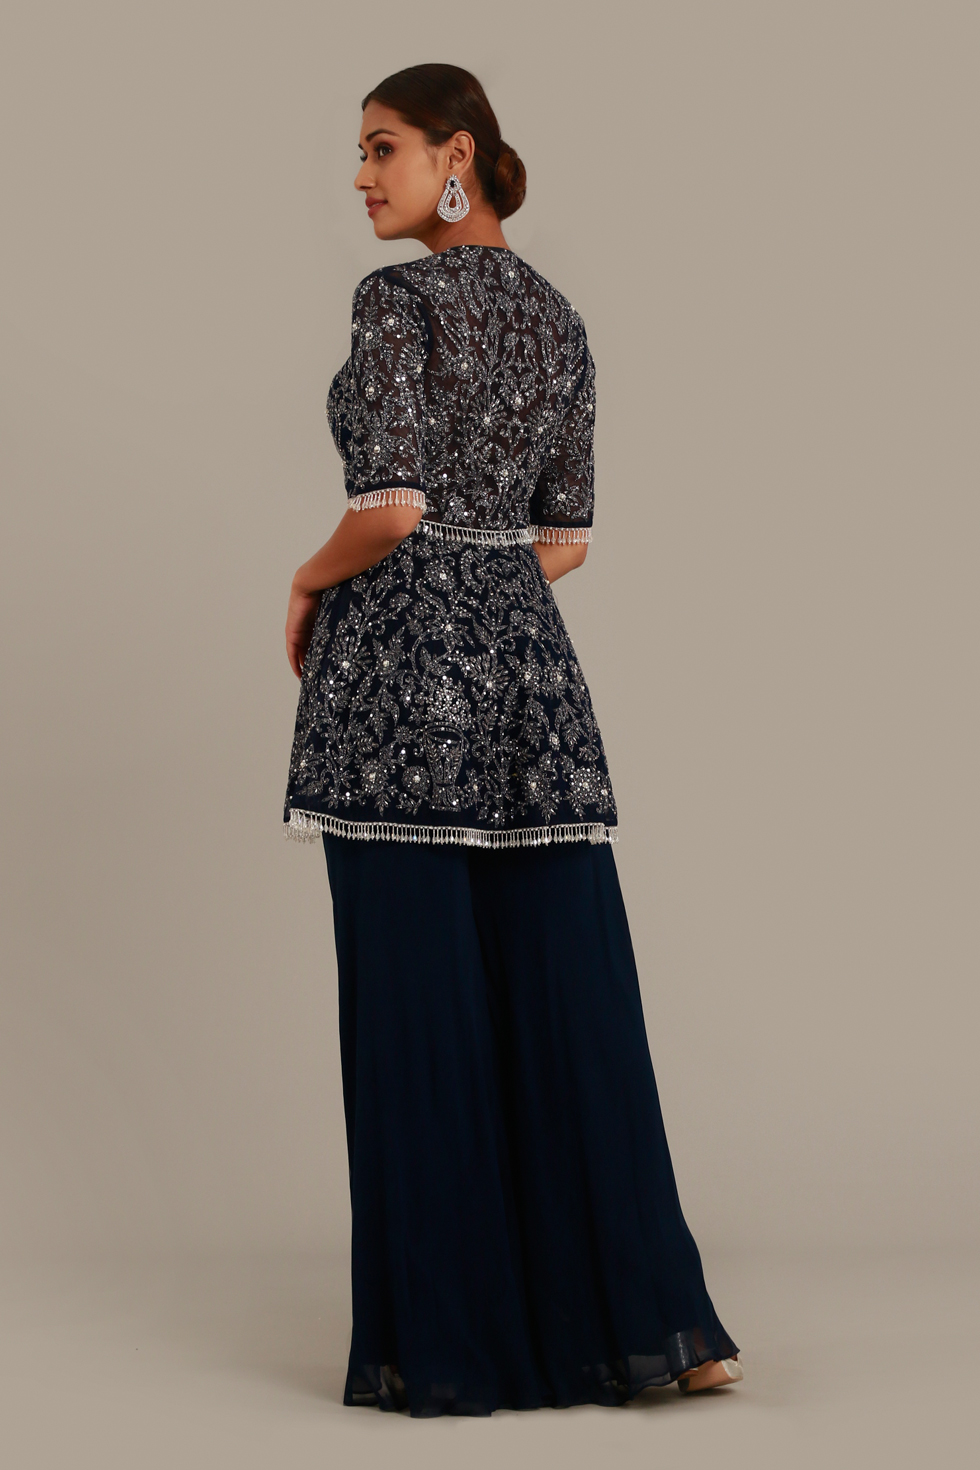 Navy blue palazzo set with peplum top, silver grey embroidery and tassel detail